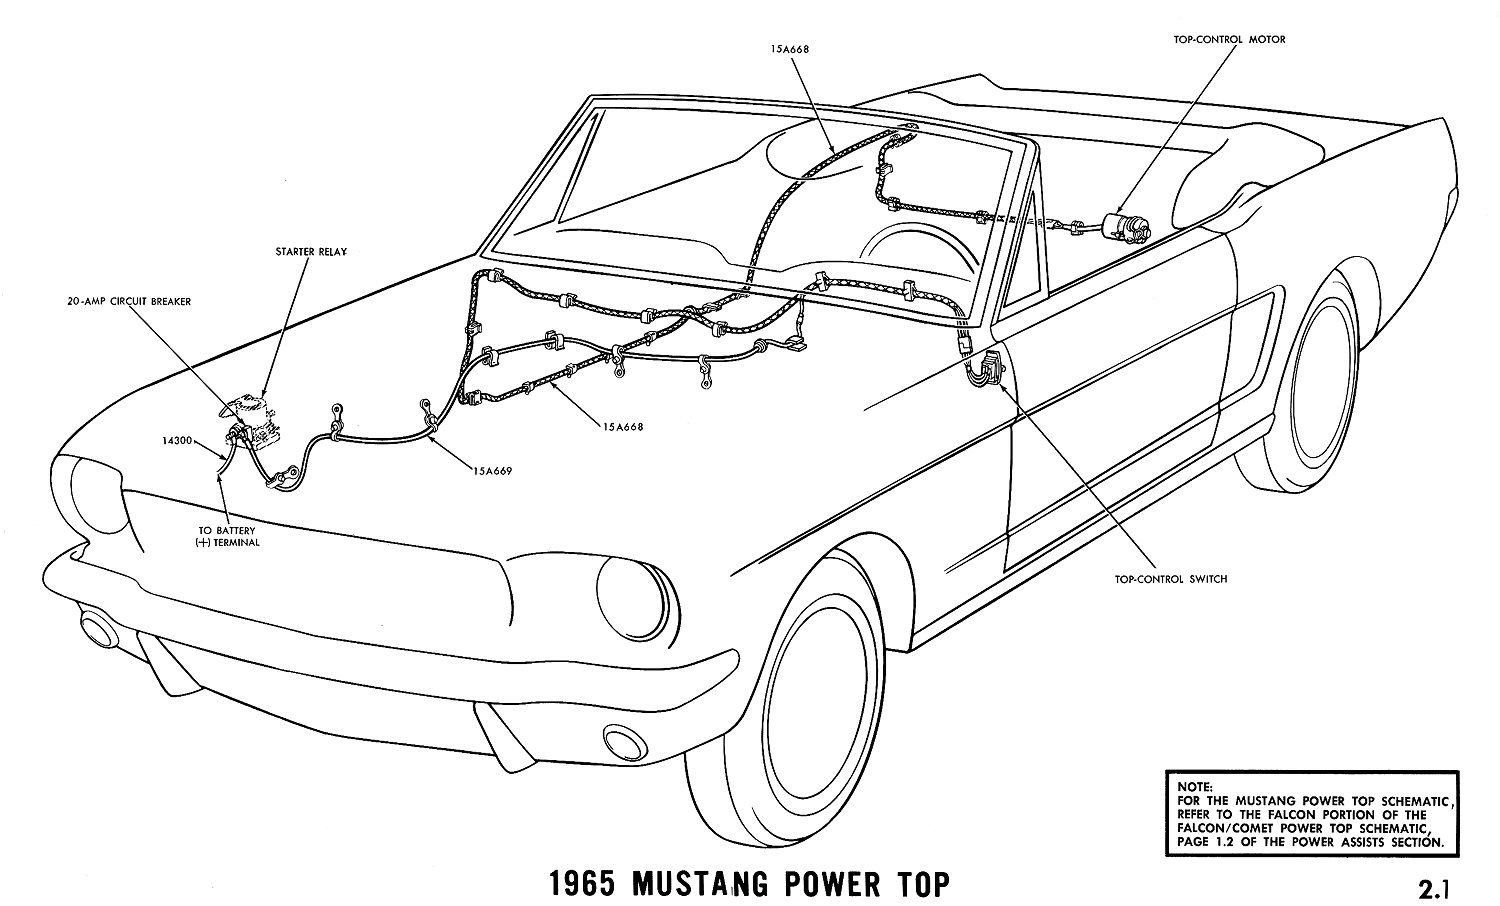 1965 Mustang Wiring Diagrams on ford mustang wiring harness